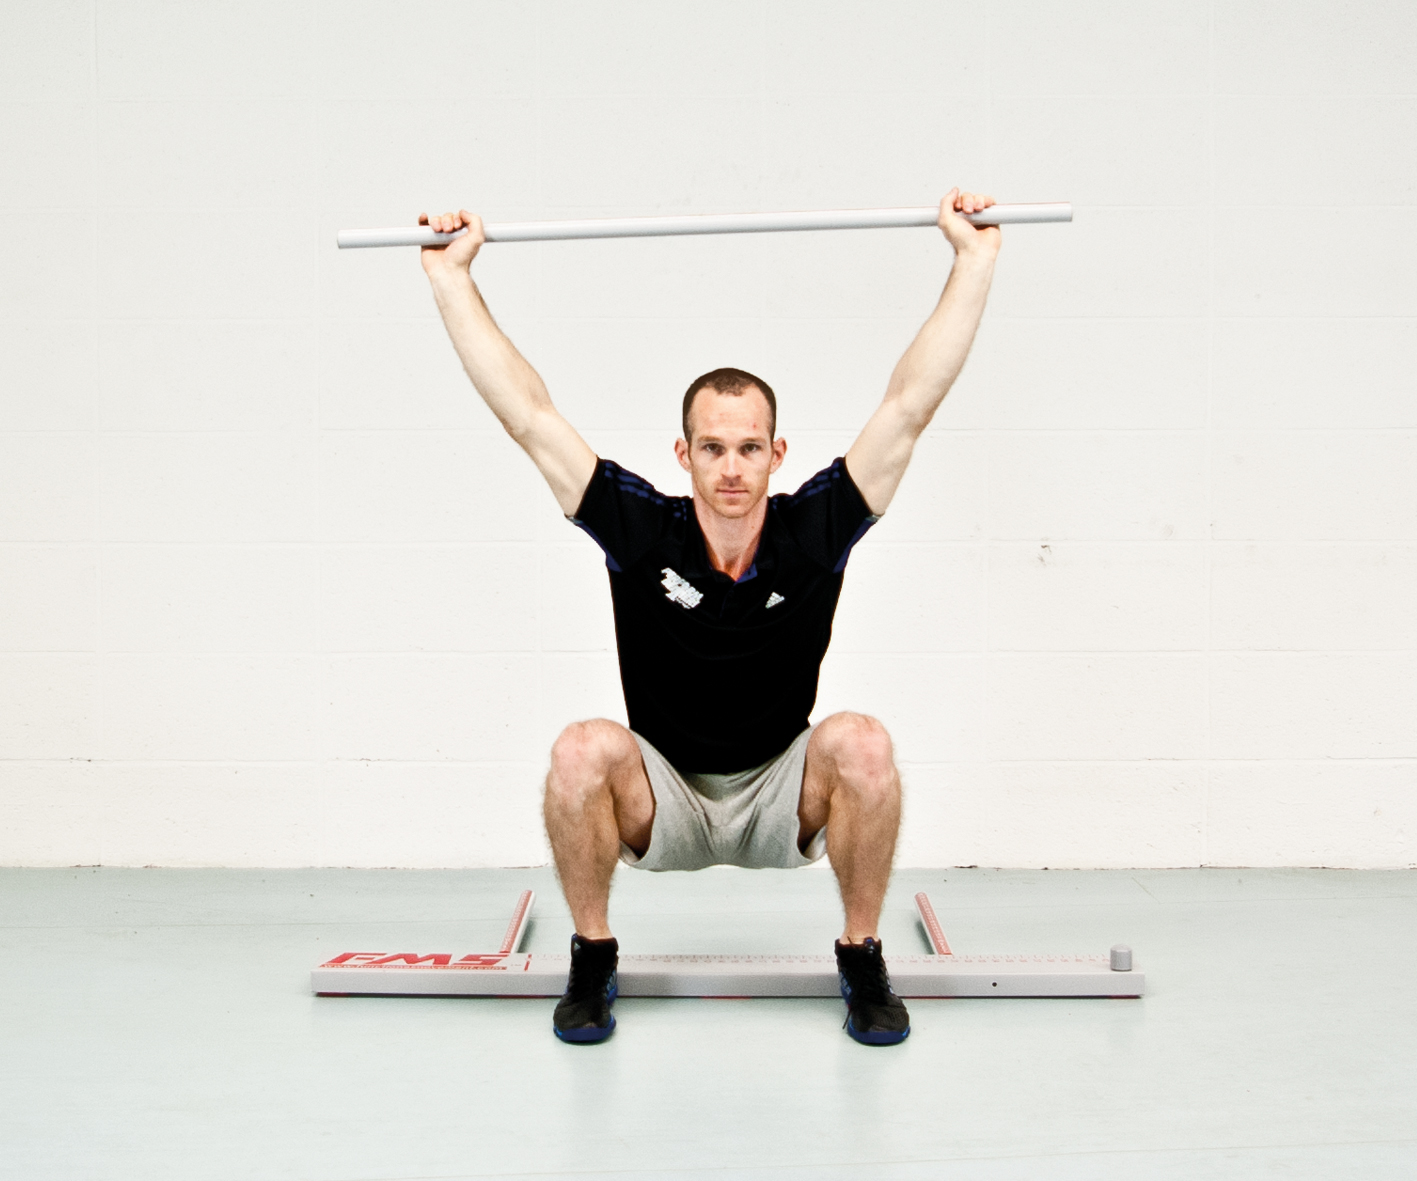 Functional Movement Screen Übung: Deep Squat